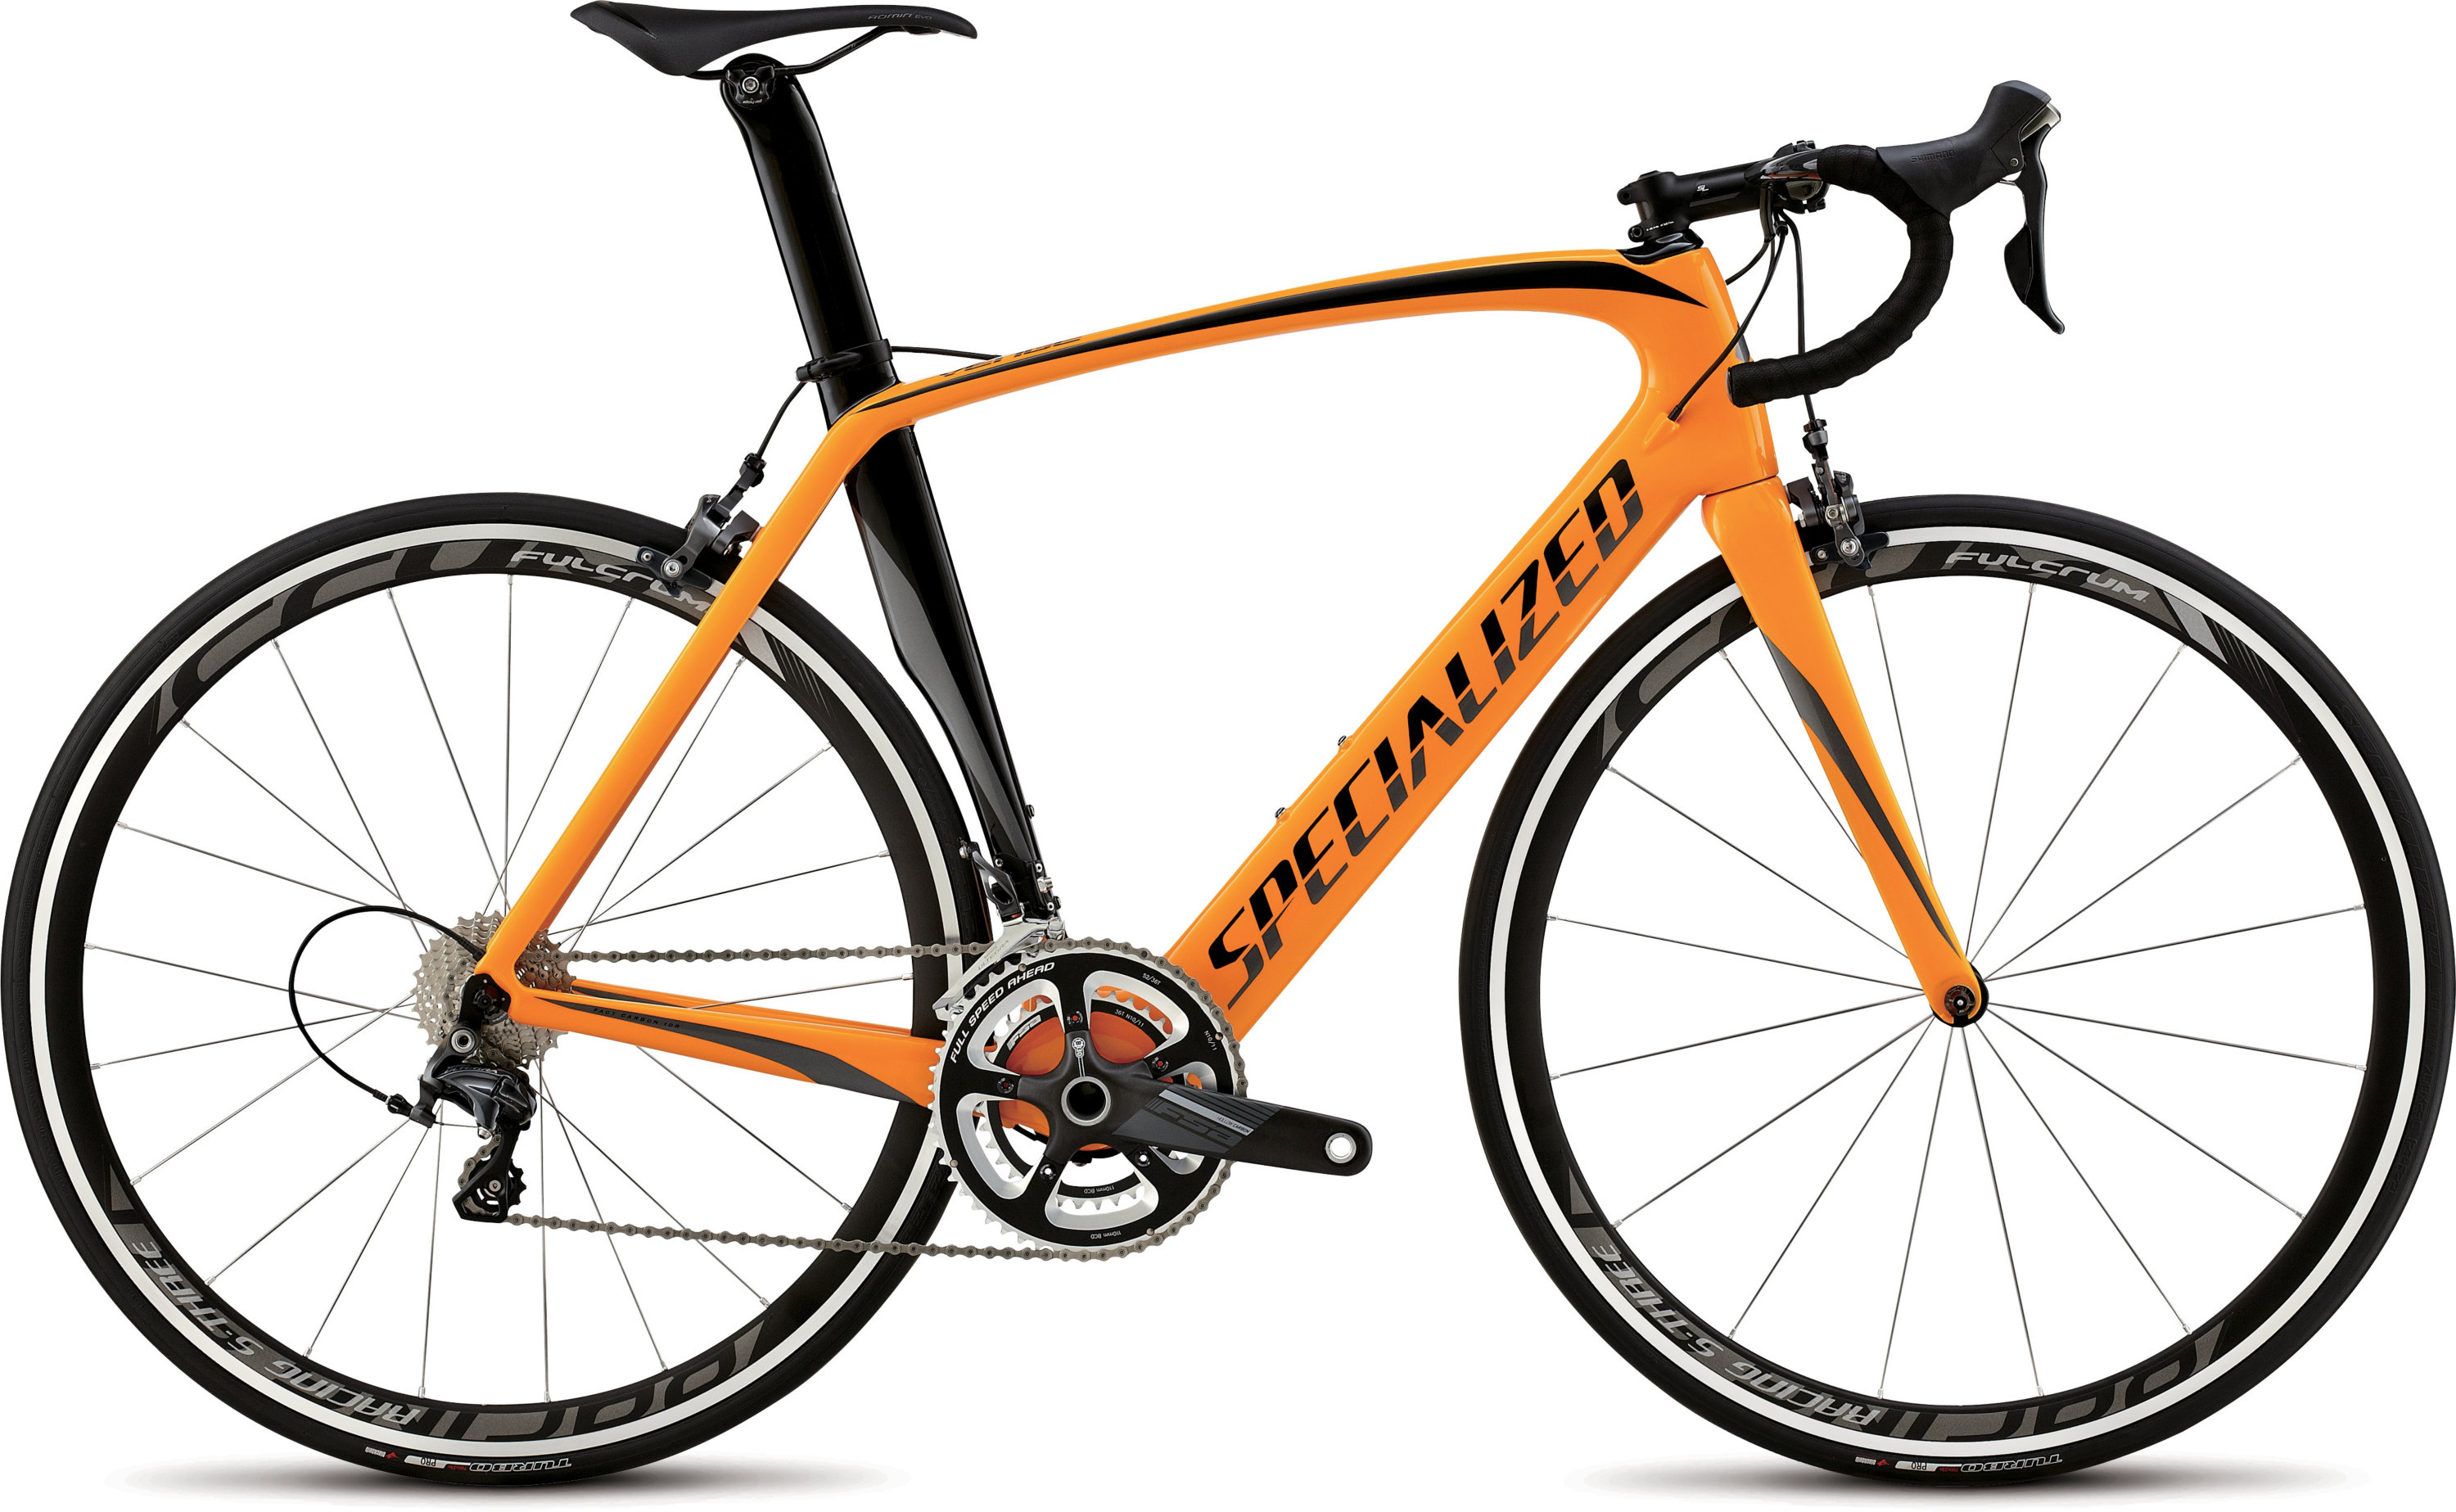 SPECIALIZED VENGE EXPERT GLDORG/BLK/CHAR 49 - Bikedreams & Dustbikes